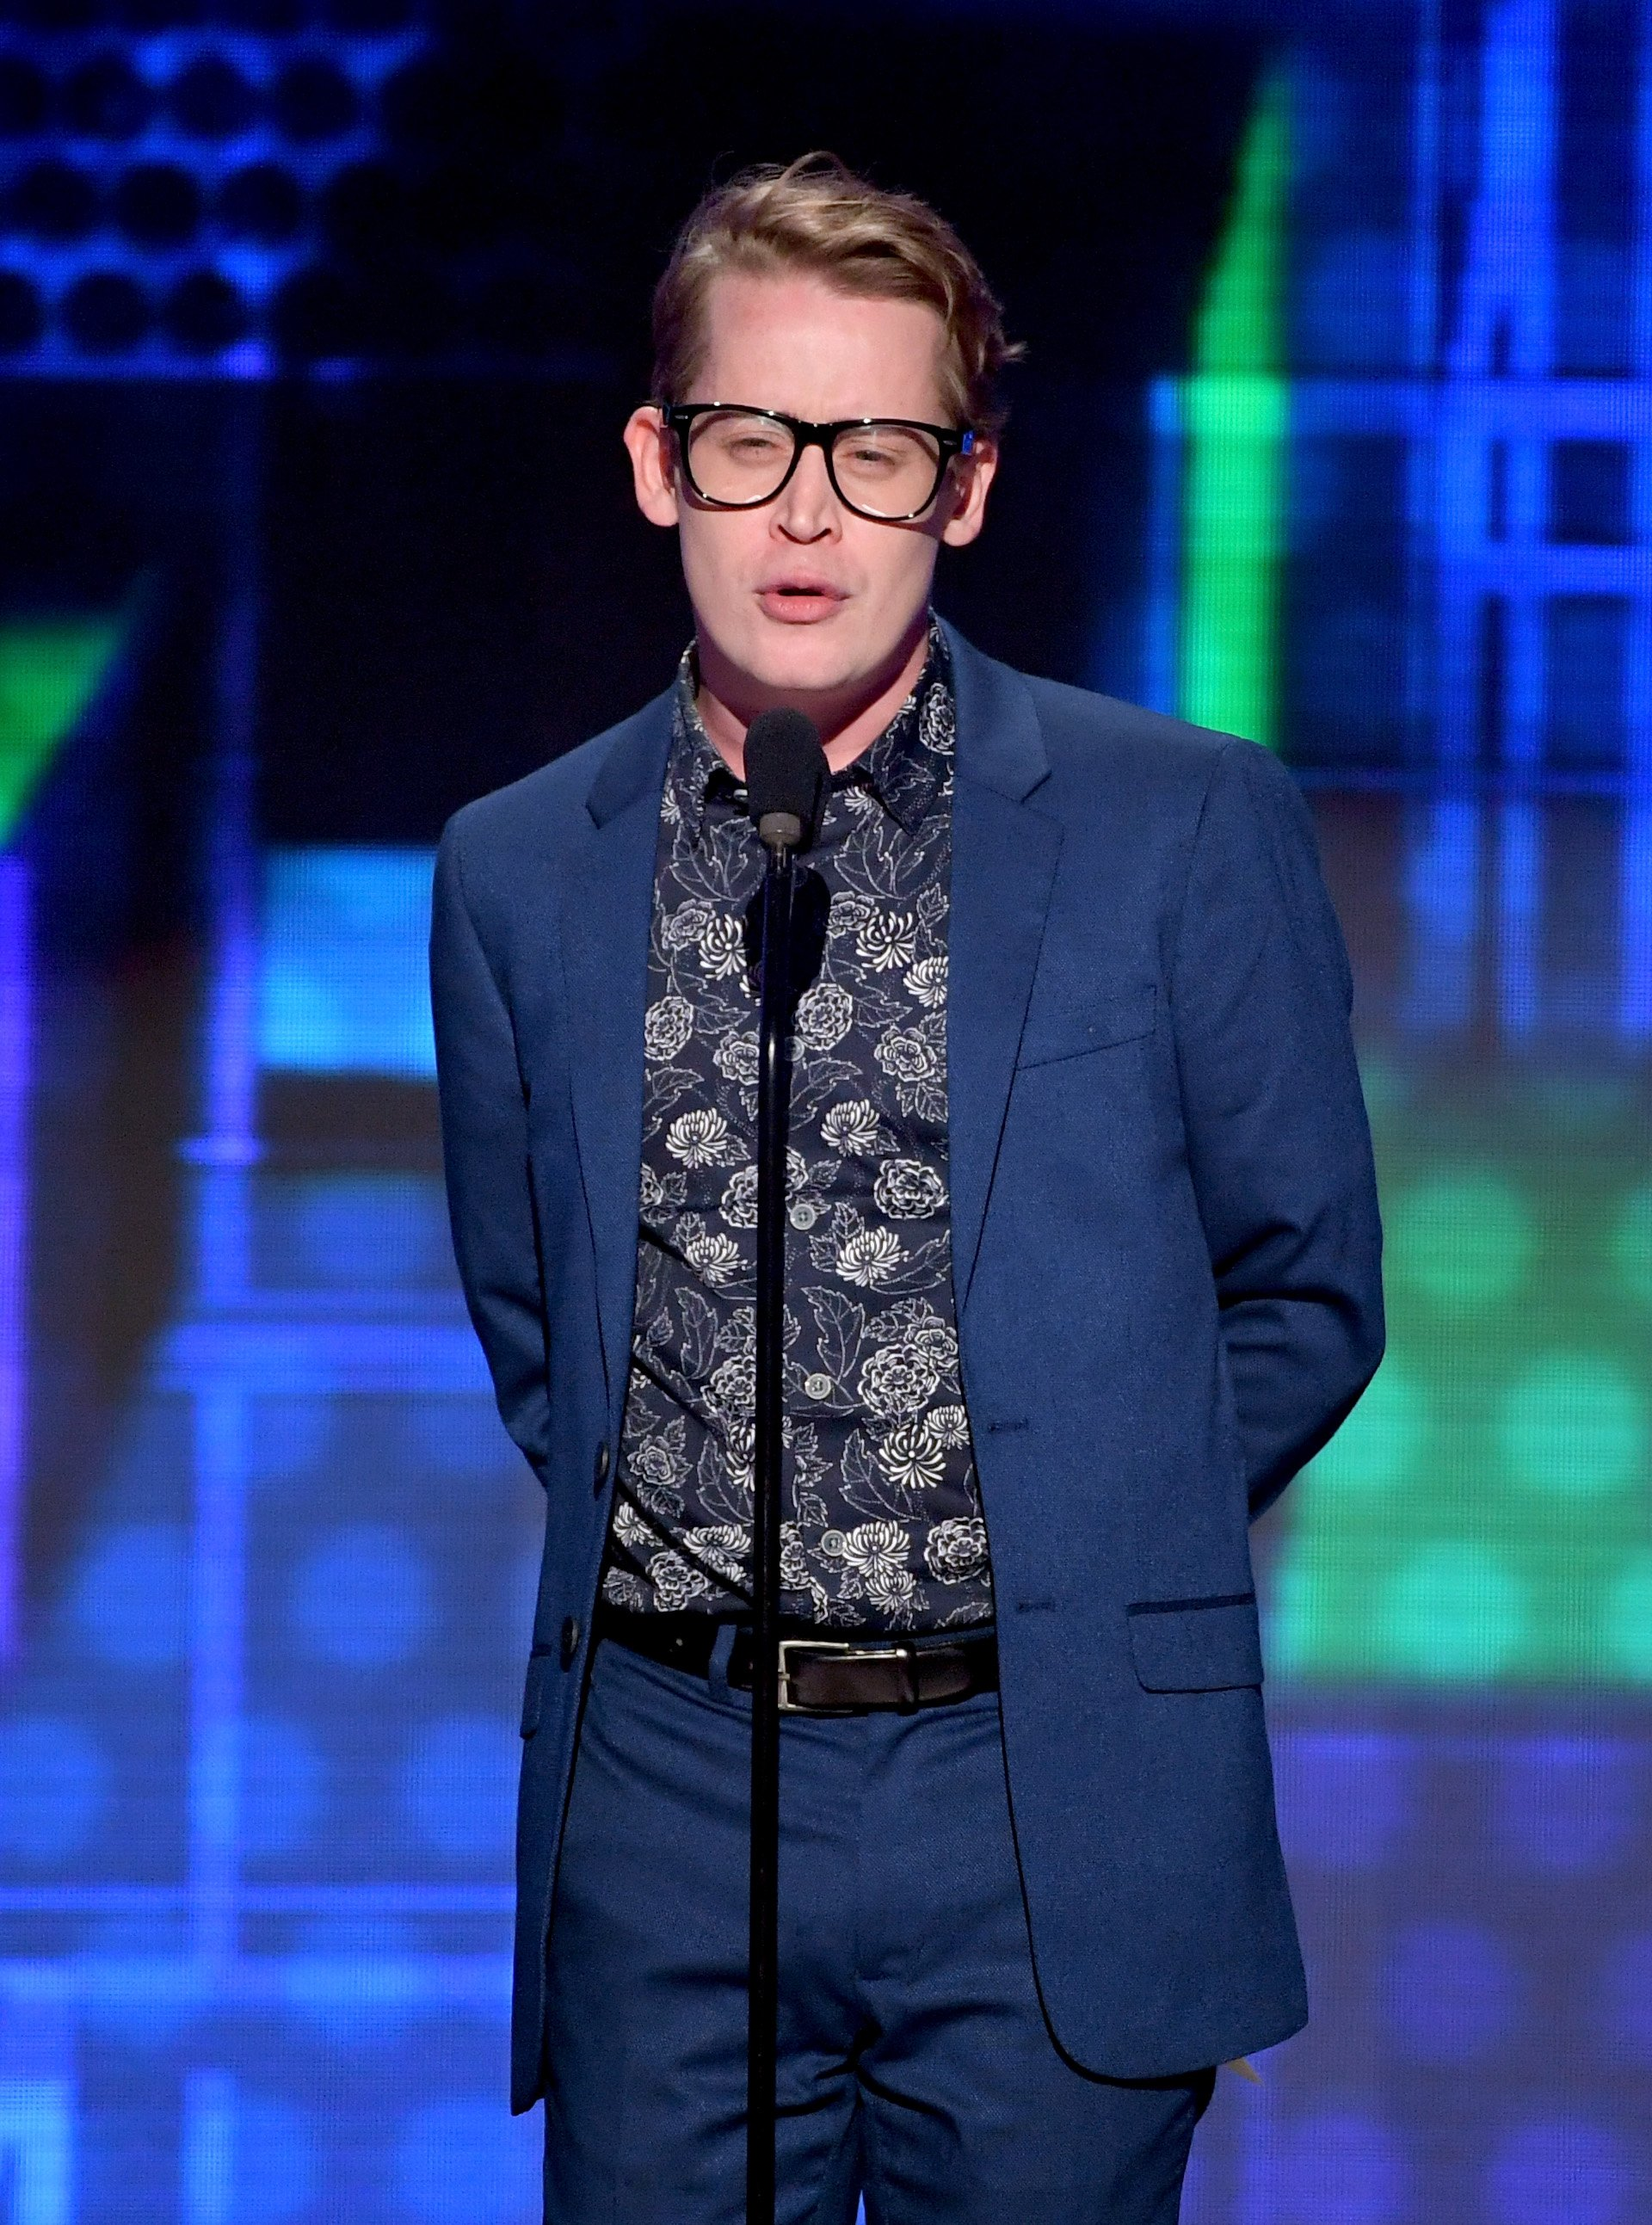 Macaulay Culkin speaks onstage during the 2018 American Music Awards at Microsoft Theater on October 9, 2018 in Los Angeles, California. | Source: Getty Images